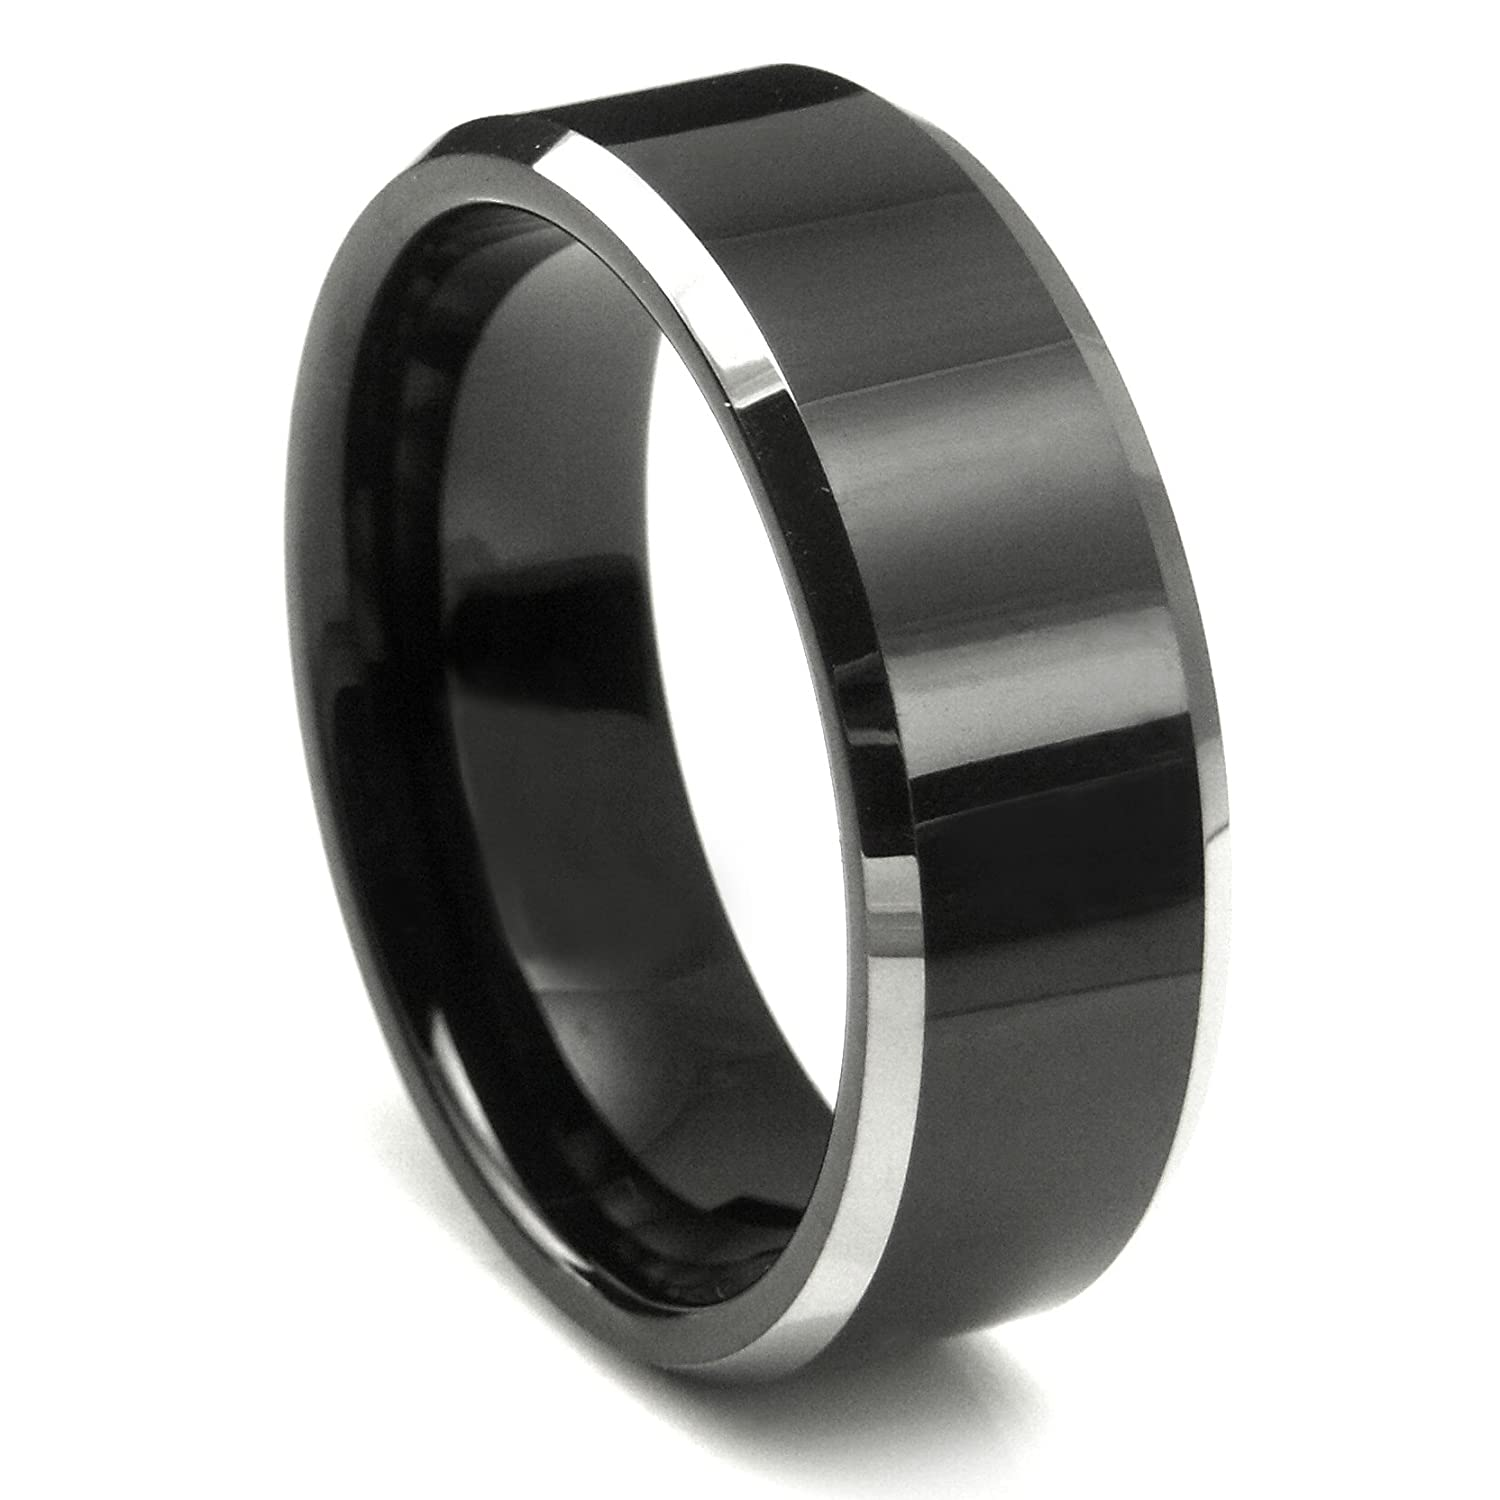 tungsten metal men s la s uni ring wedding band 8mm 5 16